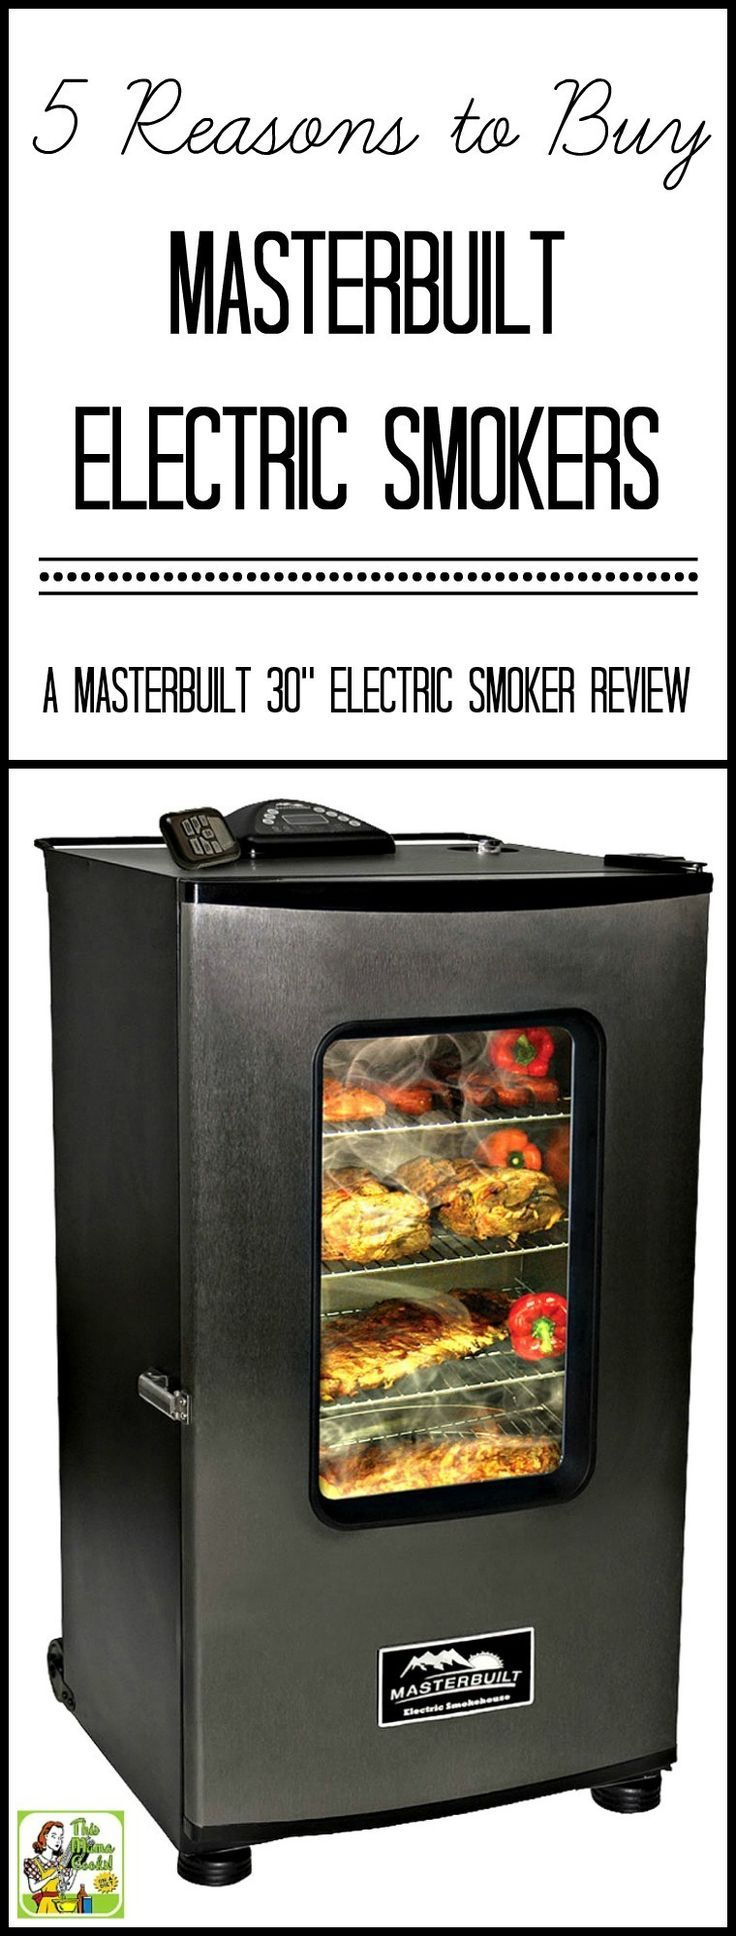 "5 Reasons to Buy Masterbuilt Electric Smokers–a Masterbuilt 30"" Electric Smoker Review via @amnichols"